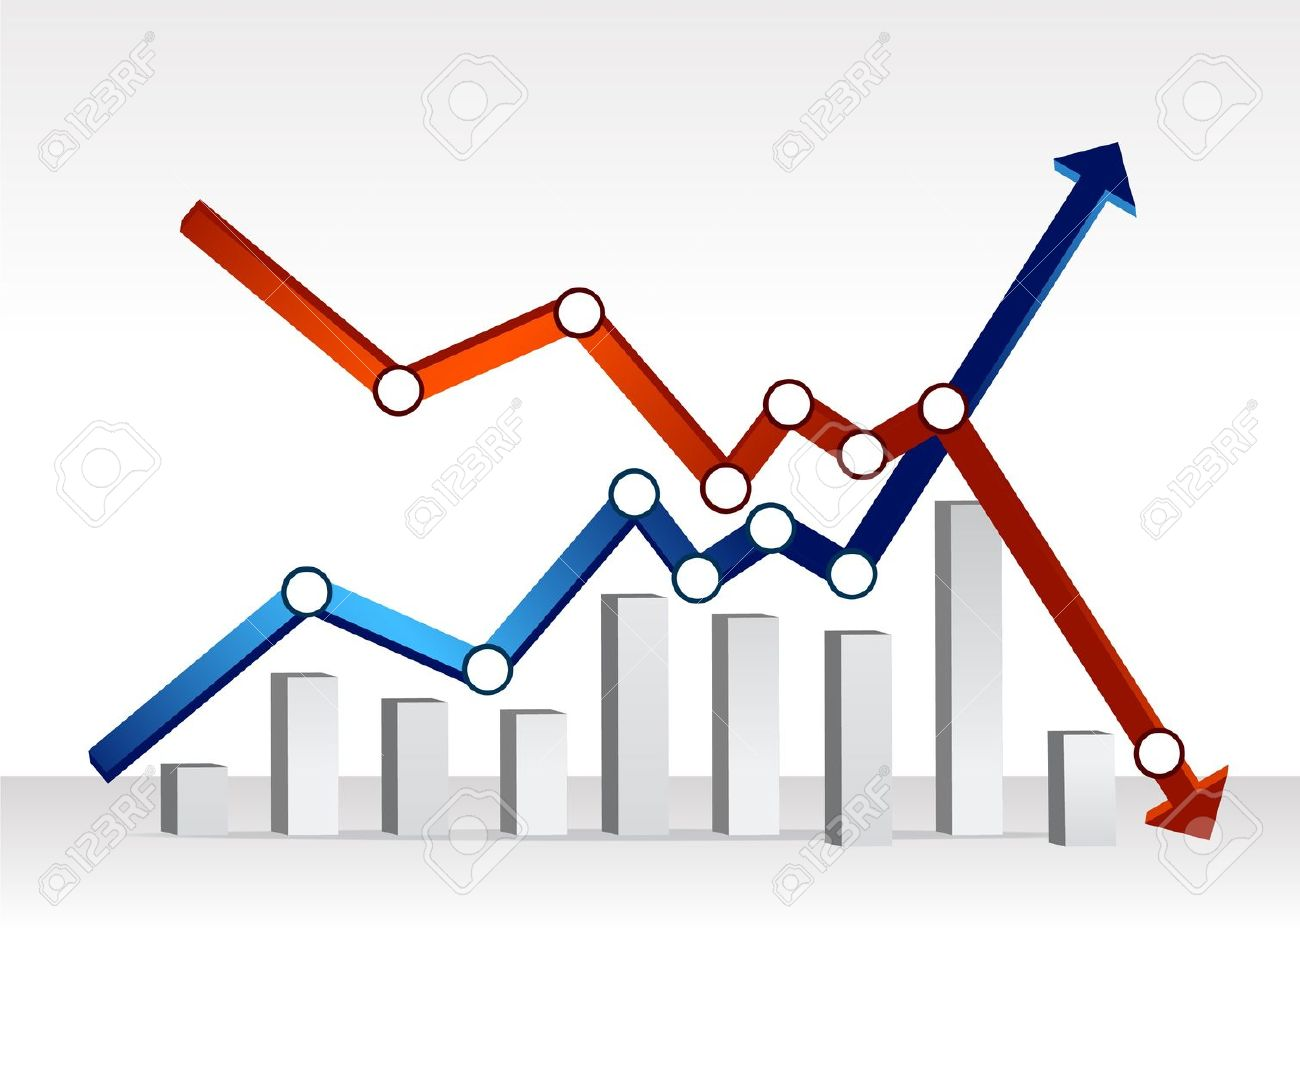 how to write a trend statement for bar graph